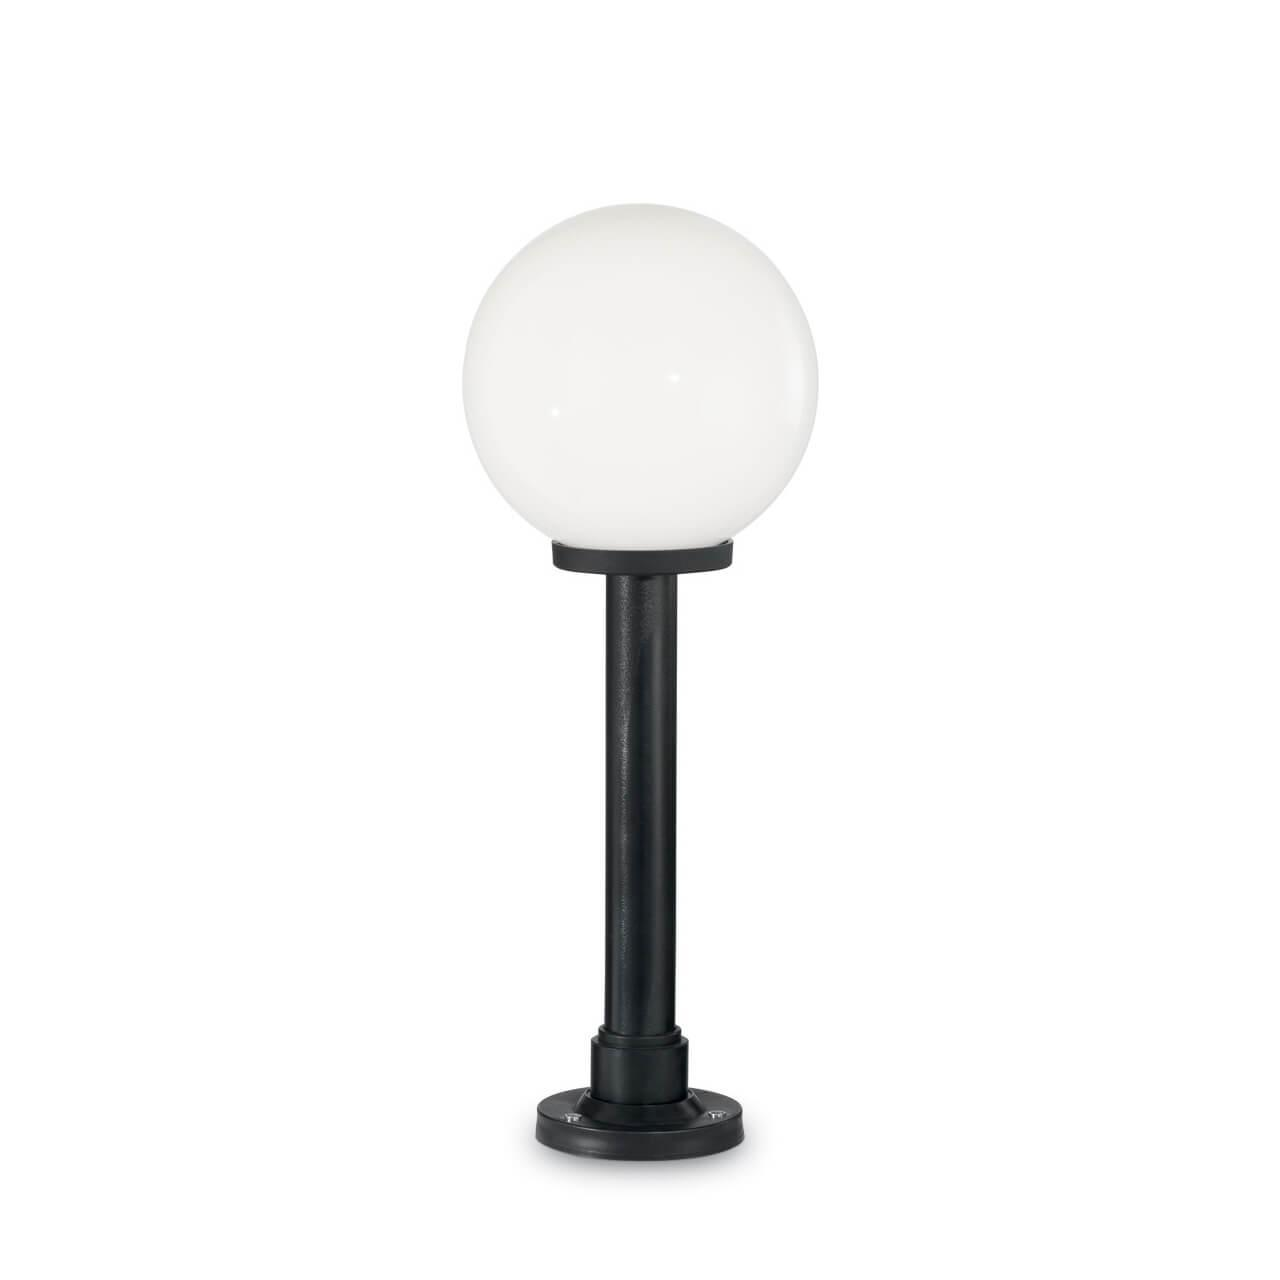 Уличный светильник Ideal Lux Classic Globe PT1 Small Bianco